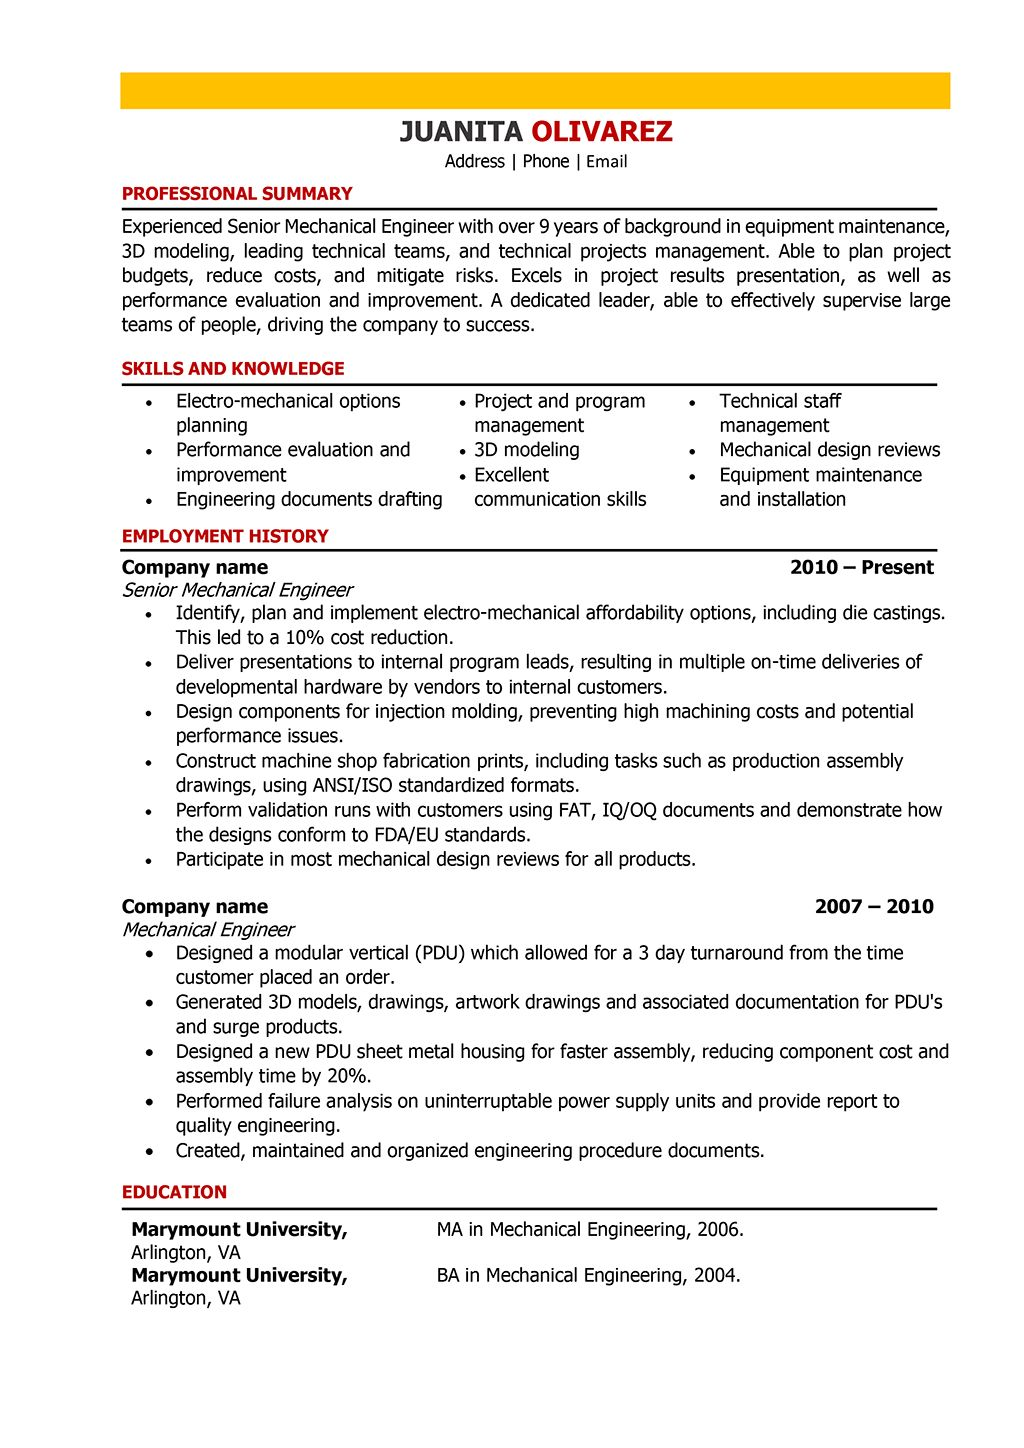 Mechanical Engineer Resume Samples and Writing Guide 10